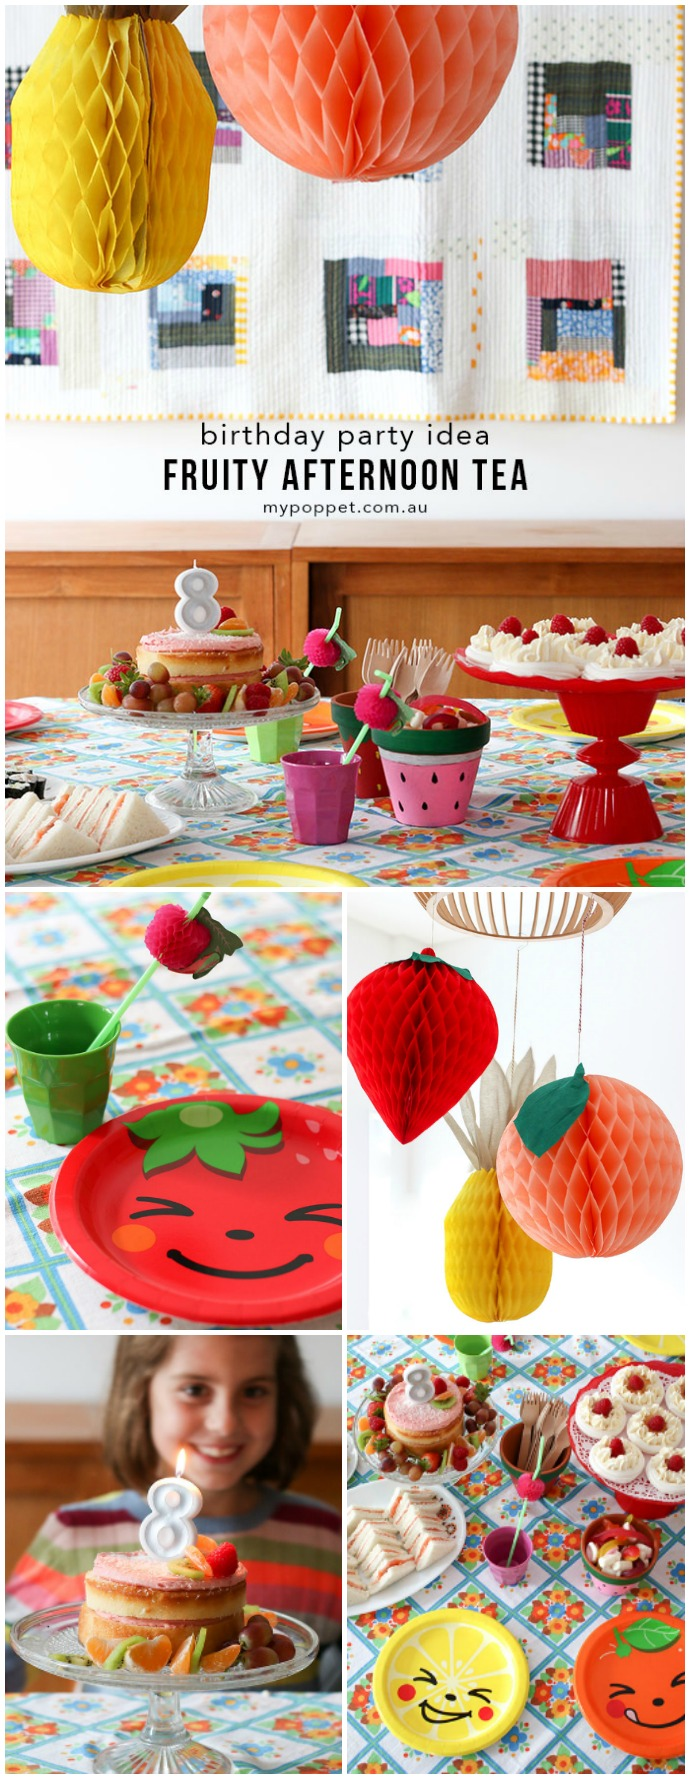 Easy Birthday party idea - Fruity Afternoon Tea Party